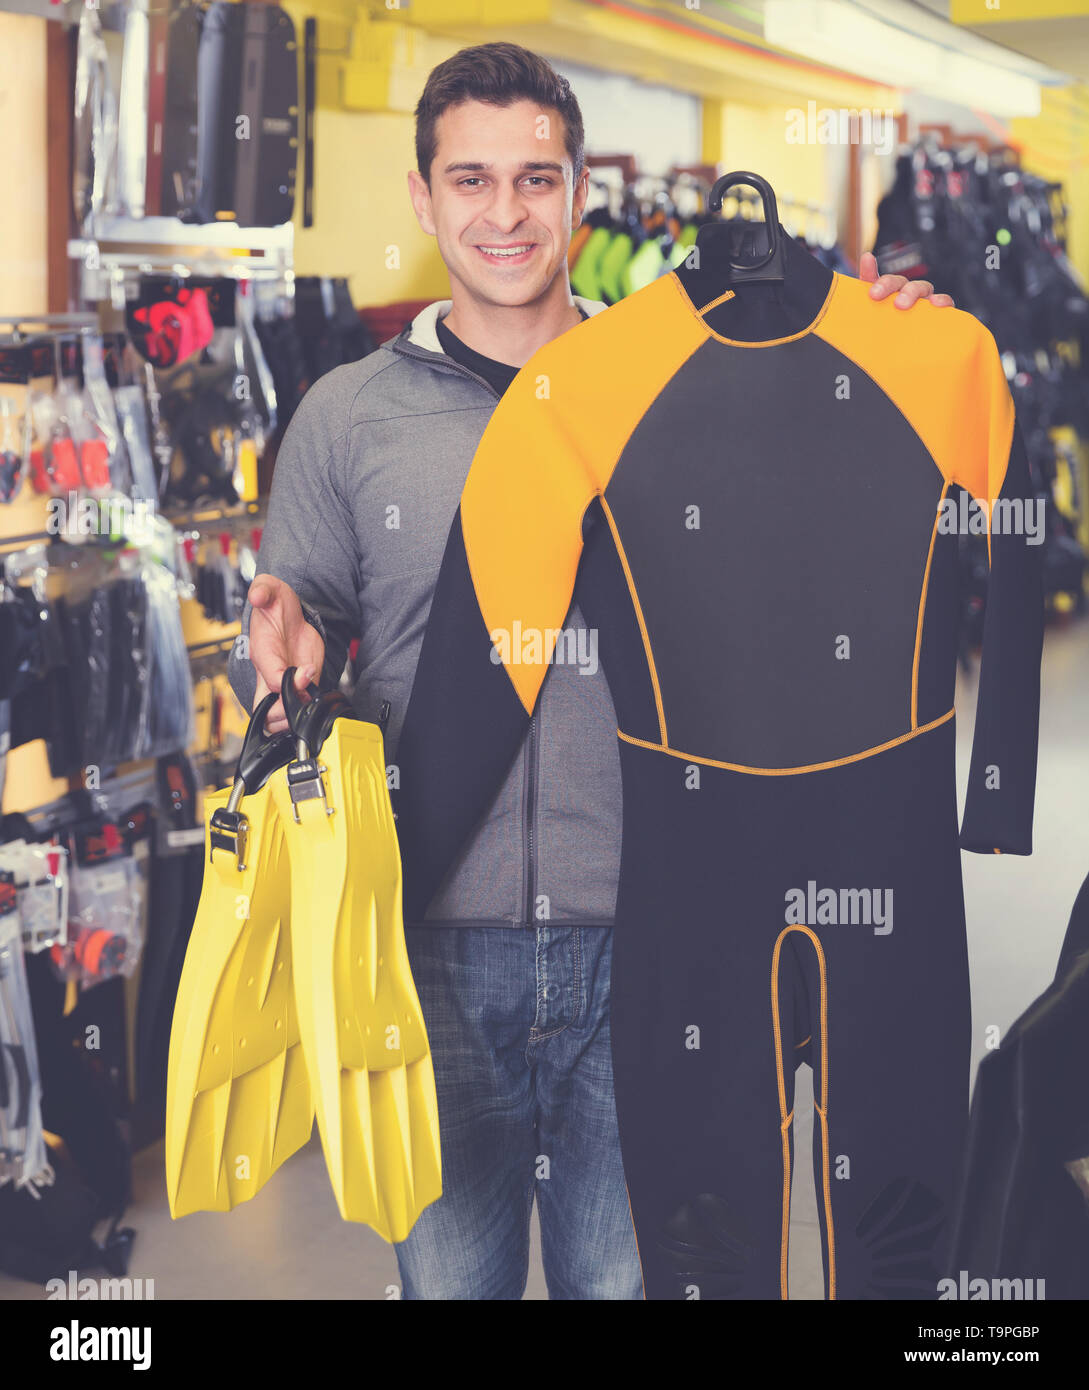 Sporty man is satisfied of new costumes for diving and flippers in the store - Stock Image